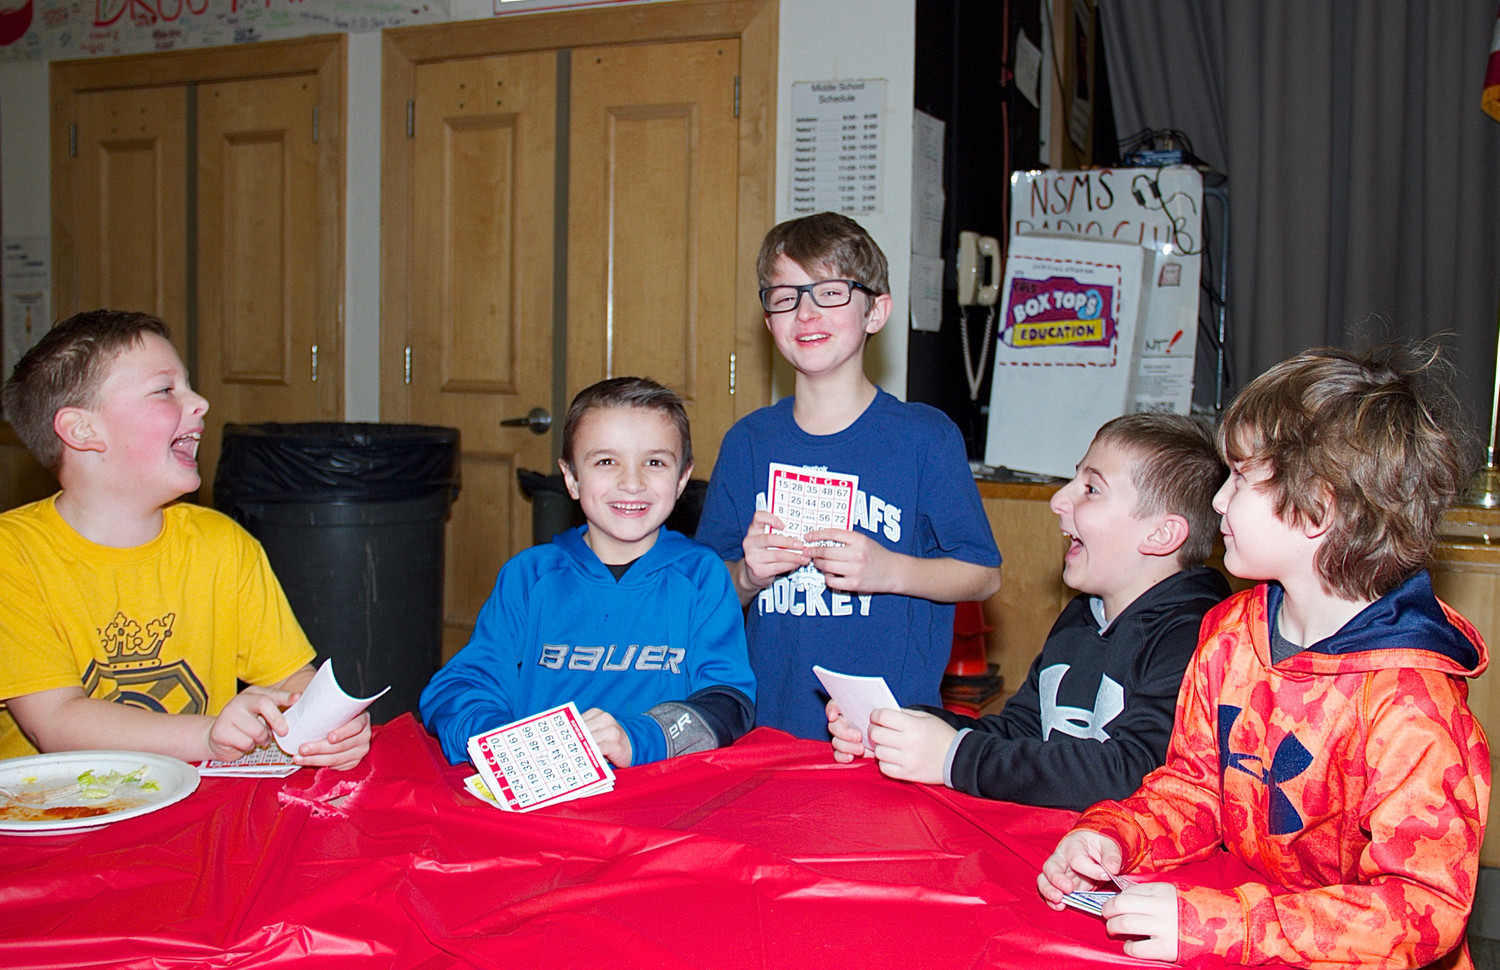 From left: Third grade students Brady Ayres, Brok Dergarabedian, John Peck, Steve Panagopoulos, and Luca Armata engaged in a rousing round of Bingo.